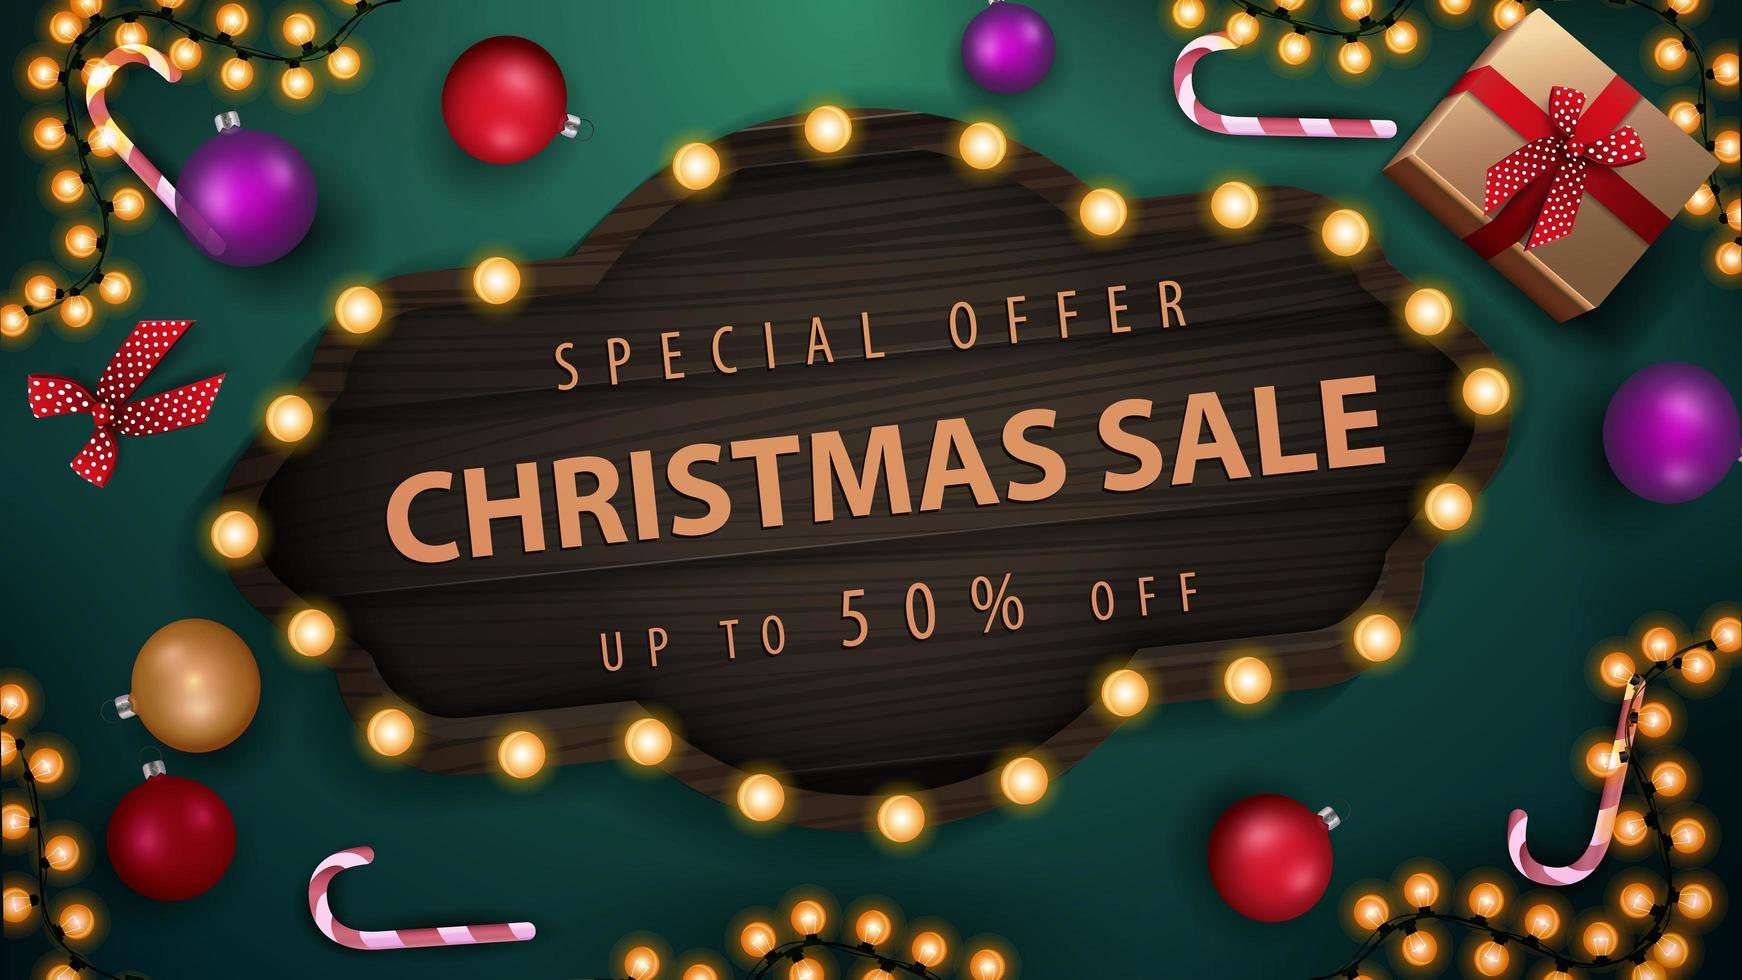 Special offer, Christmas sale, up to 50 off, green discount banner with Christmas balls, candy canes, garland and gifts, top view vector